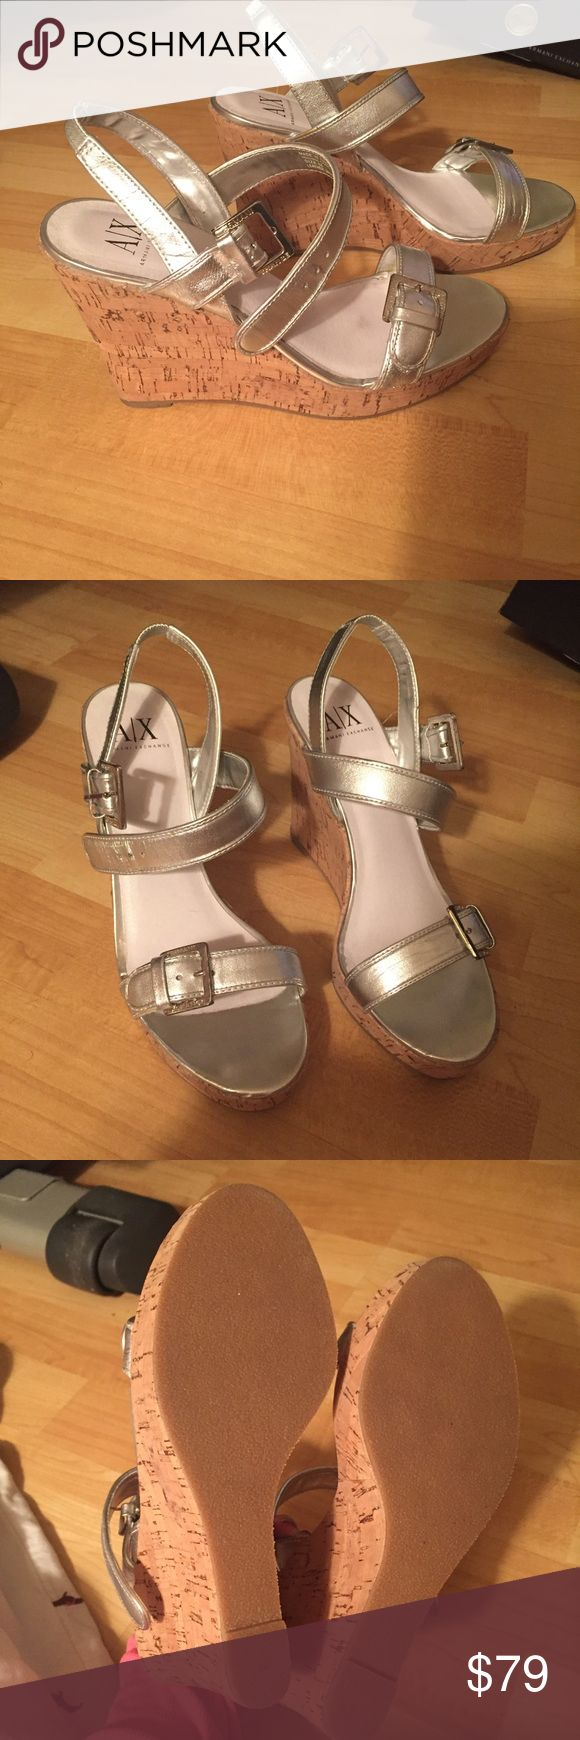 Armani Exchange wedges Never worn outside!!! Only walked around inside my home. Smells brand new!!! Comfortable and cute. Goes with jeans or a dress!!! Silver leather straps and silver buckles. They need a home where they will be worn. Make me an offer 💚 Armani Exchange Shoes Wedges